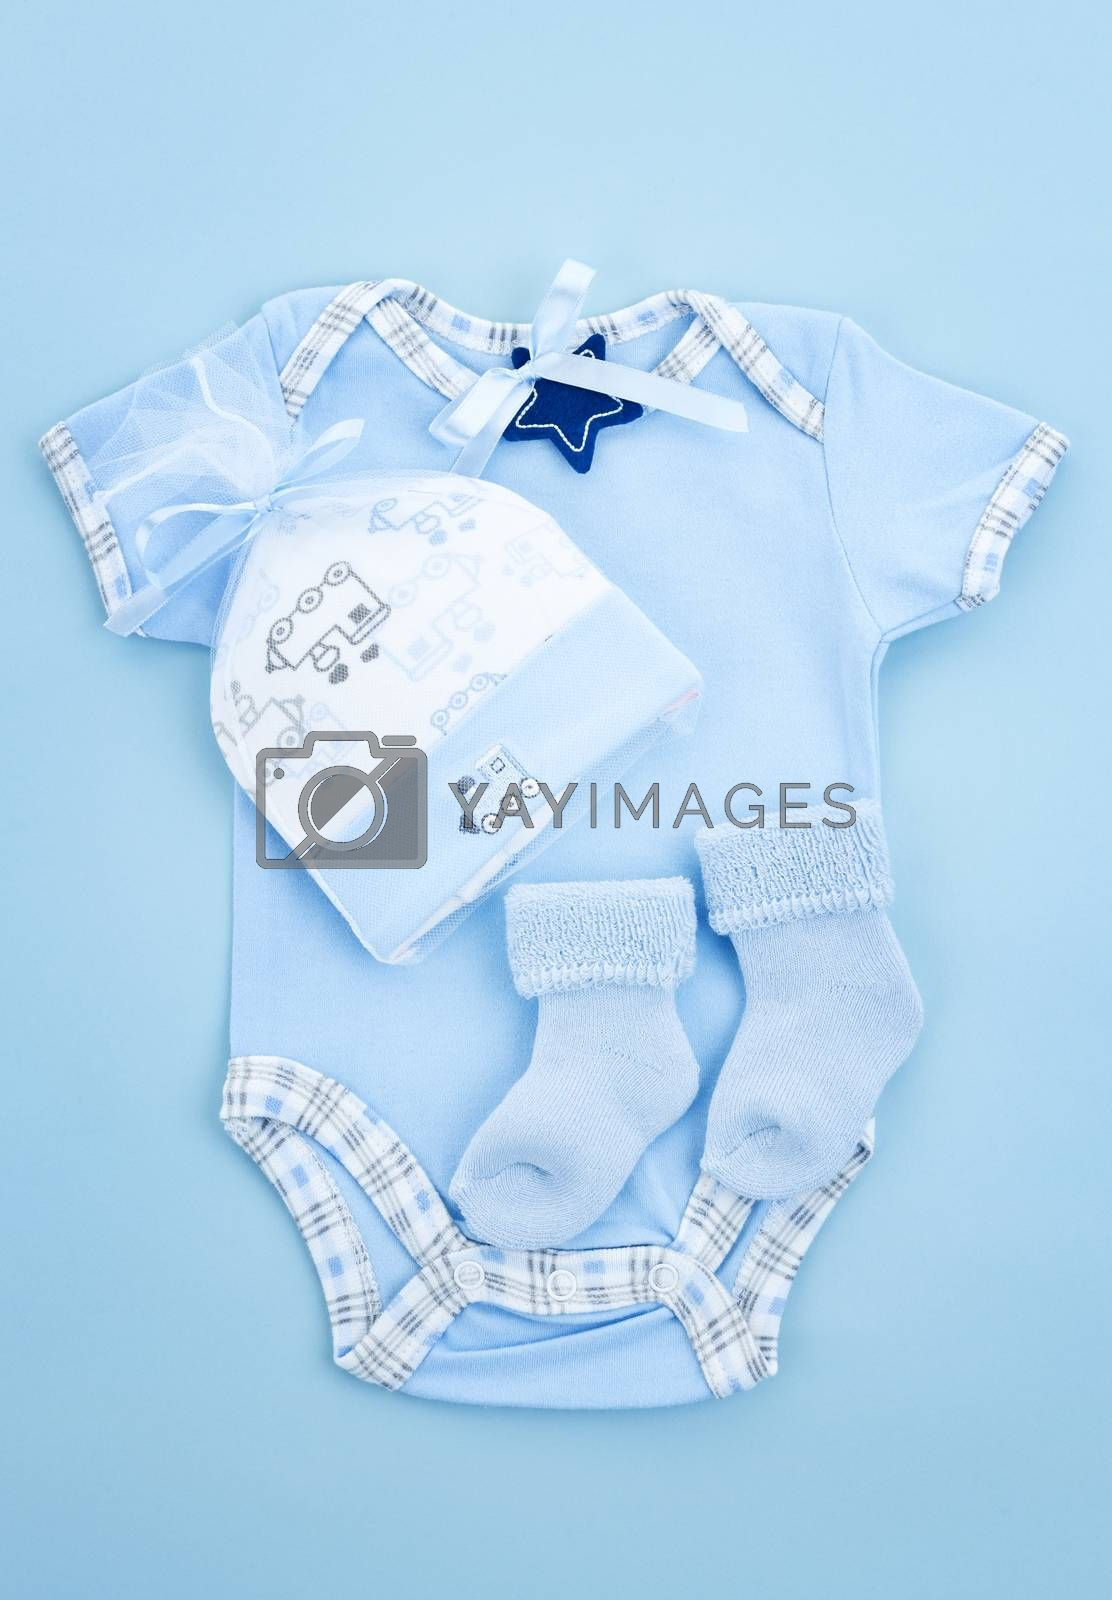 Blue infant boy clothing for baby shower